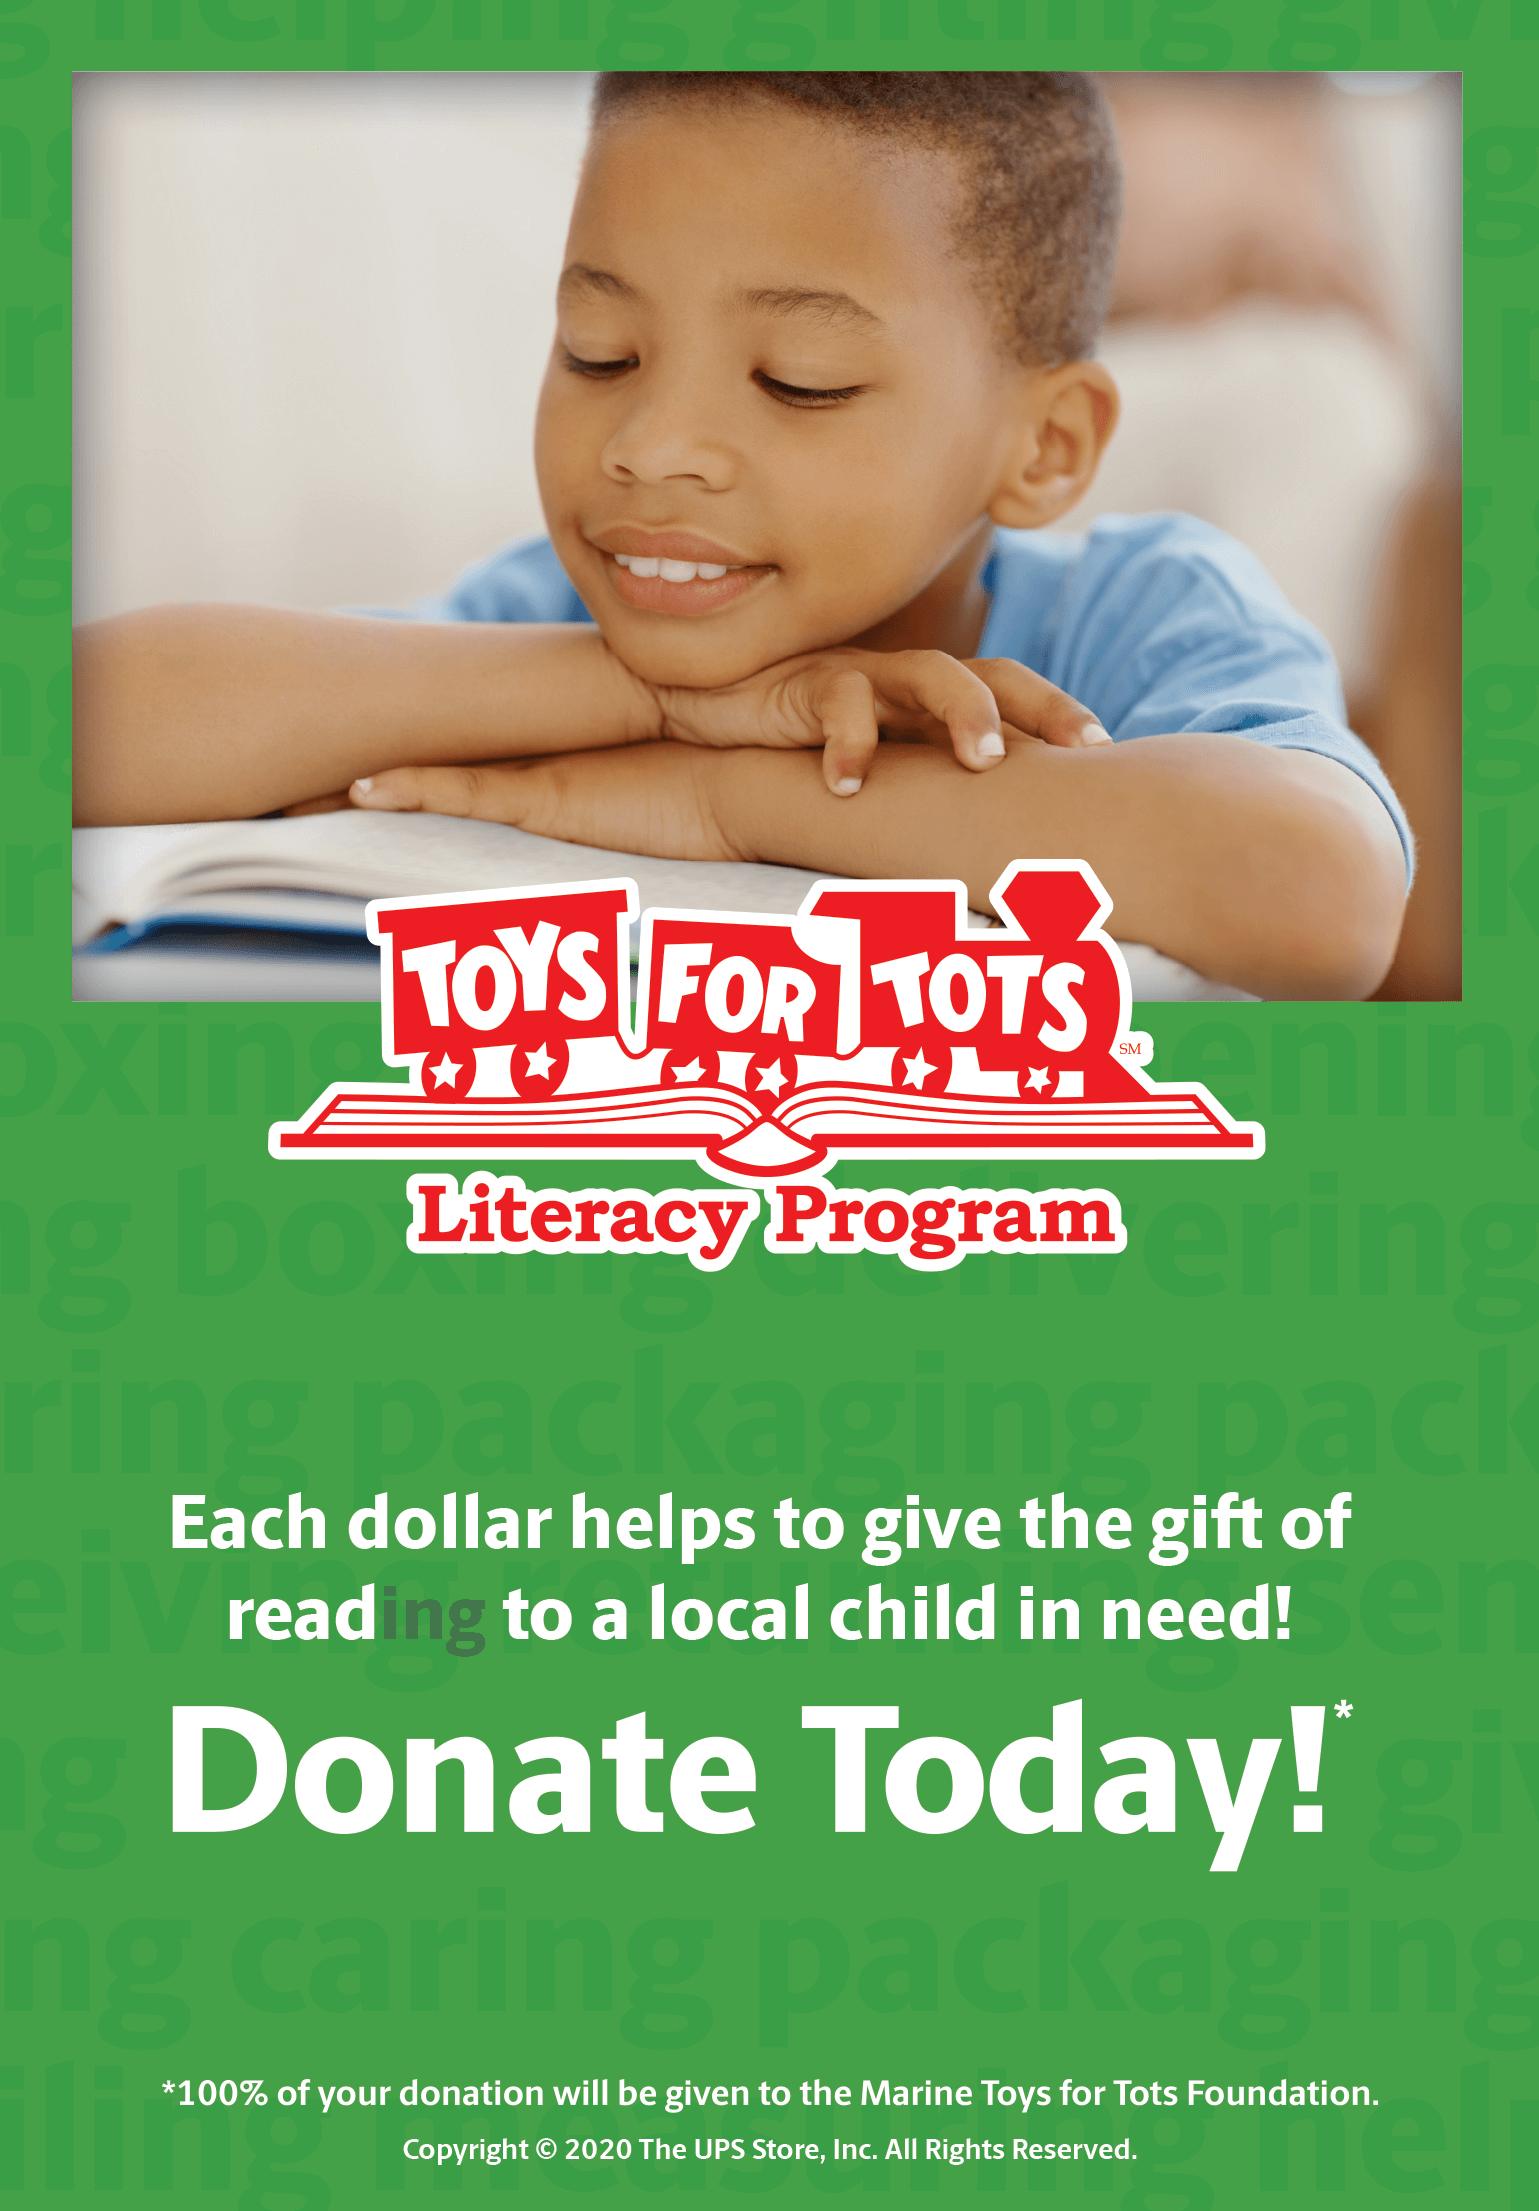 We created a suite of unique POS collateral, including a coin box wrap, to encourage in-store donations and help create awareness around the Toys for Tots Literacy Program.